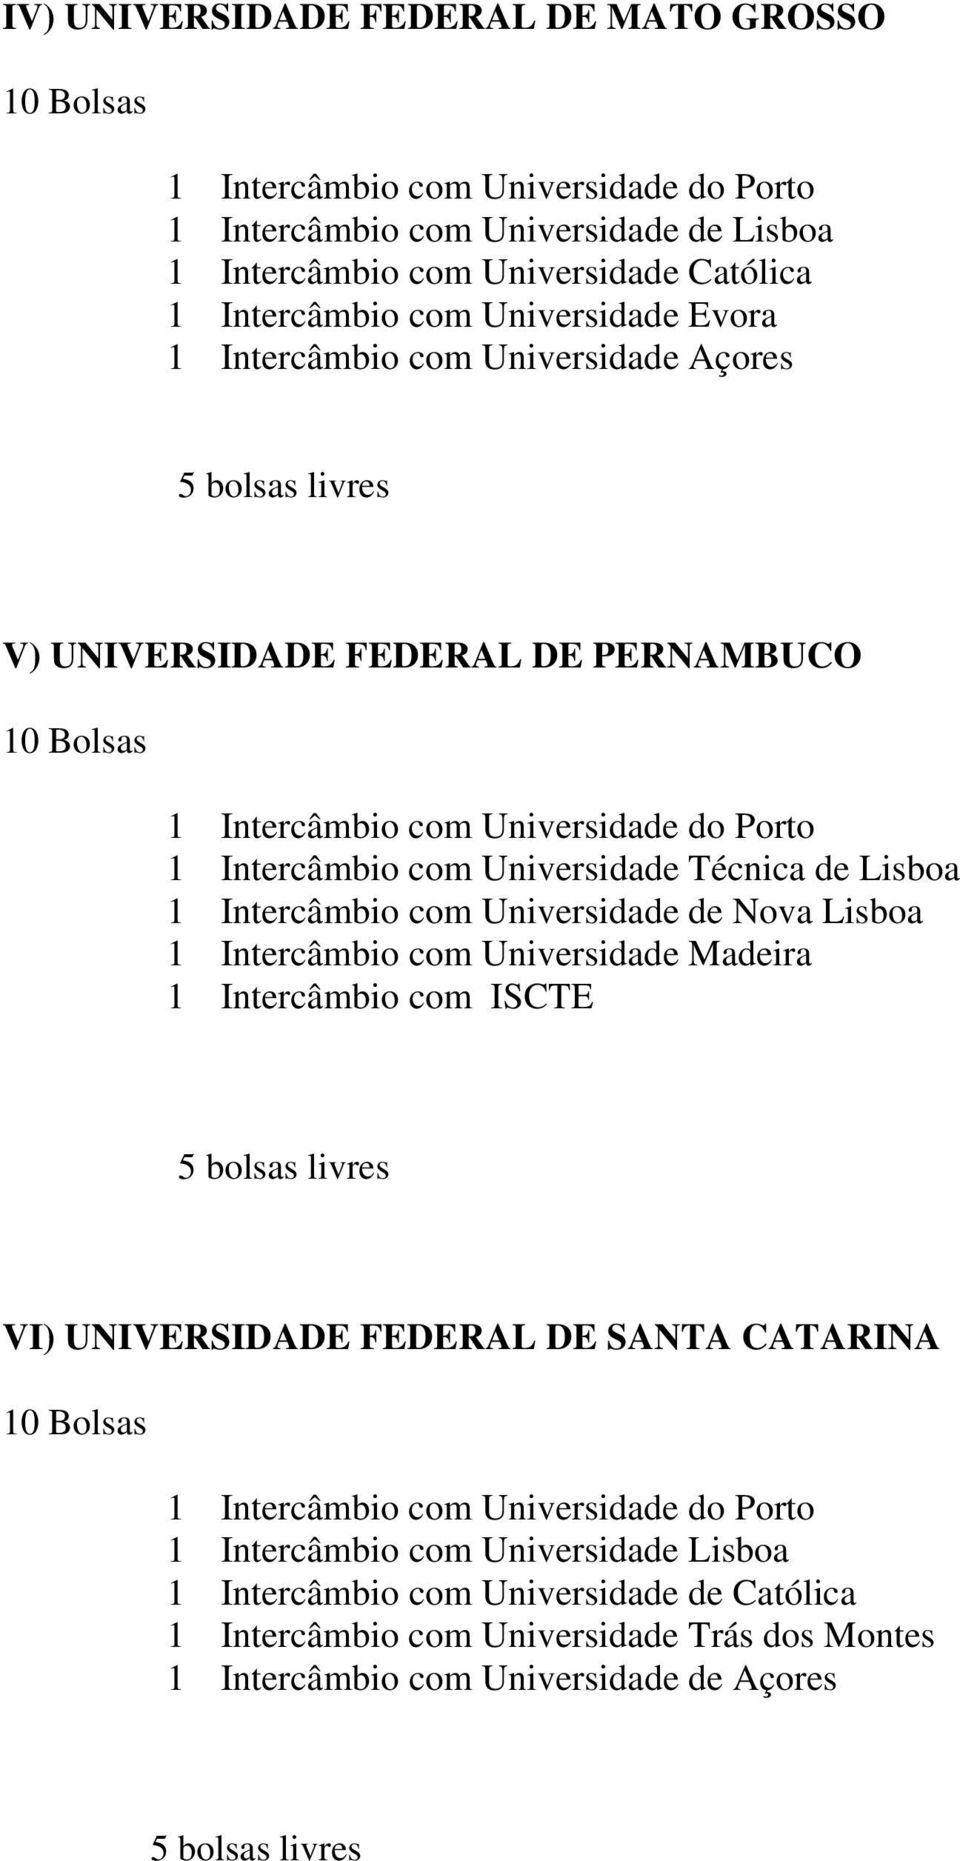 Lisboa 1 Intercâmbio com Universidade Madeira 1 Intercâmbio com ISCTE VI) UNIVERSIDADE FEDERAL DE SANTA CATARINA 1 Intercâmbio com